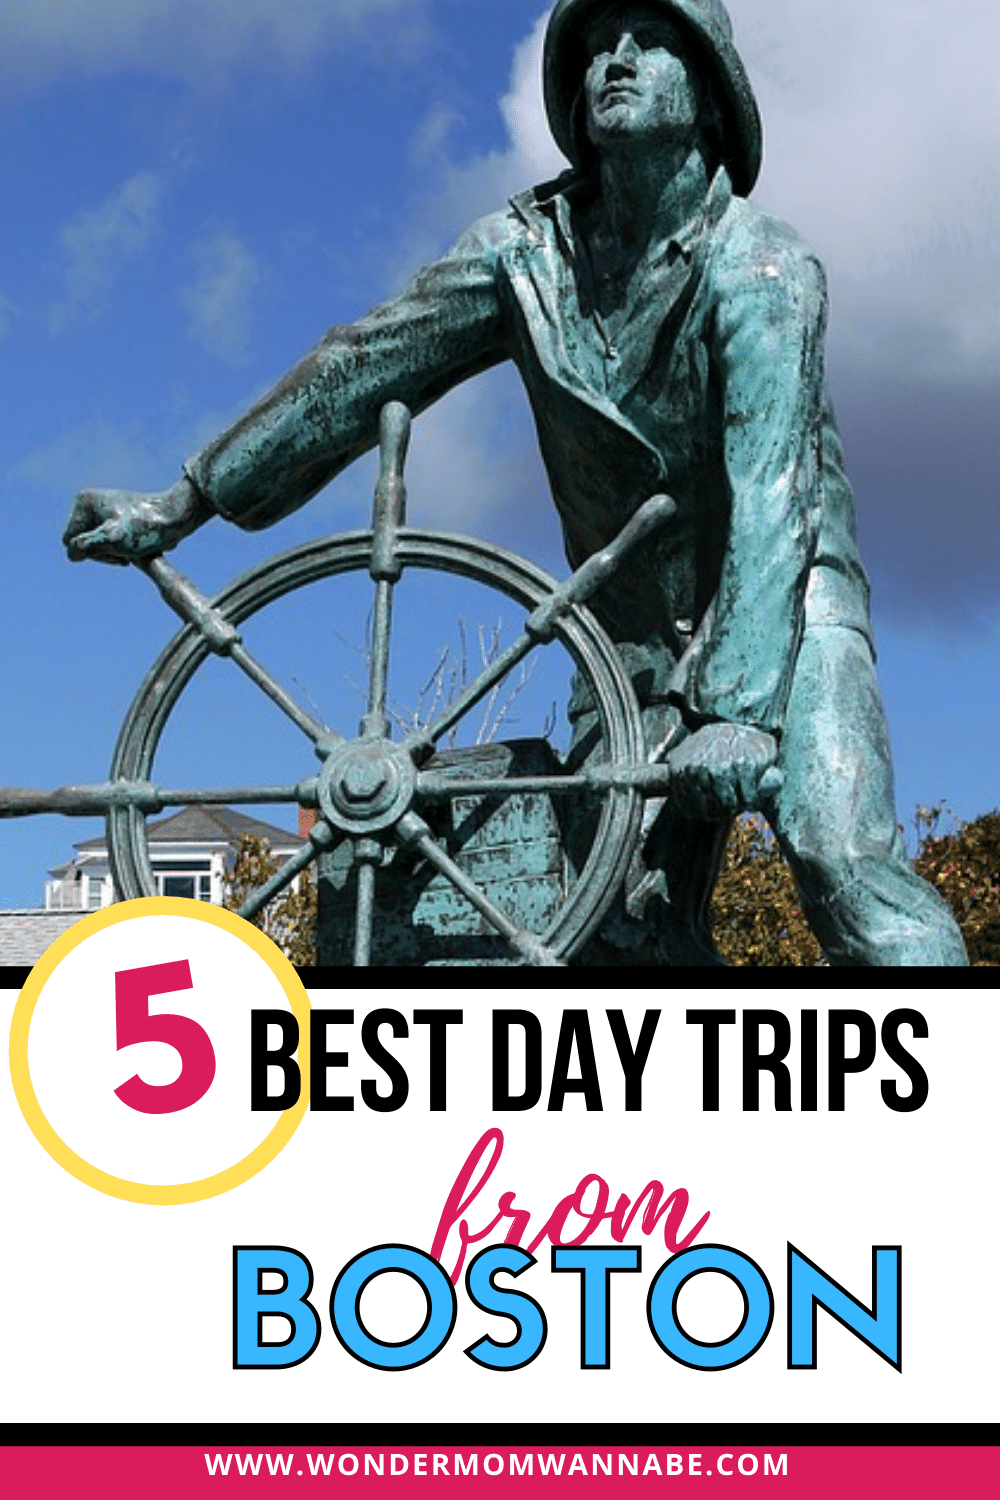 a statue of a man steering the wheel of a boat with title text reading 5 Best Day Trips from Boston